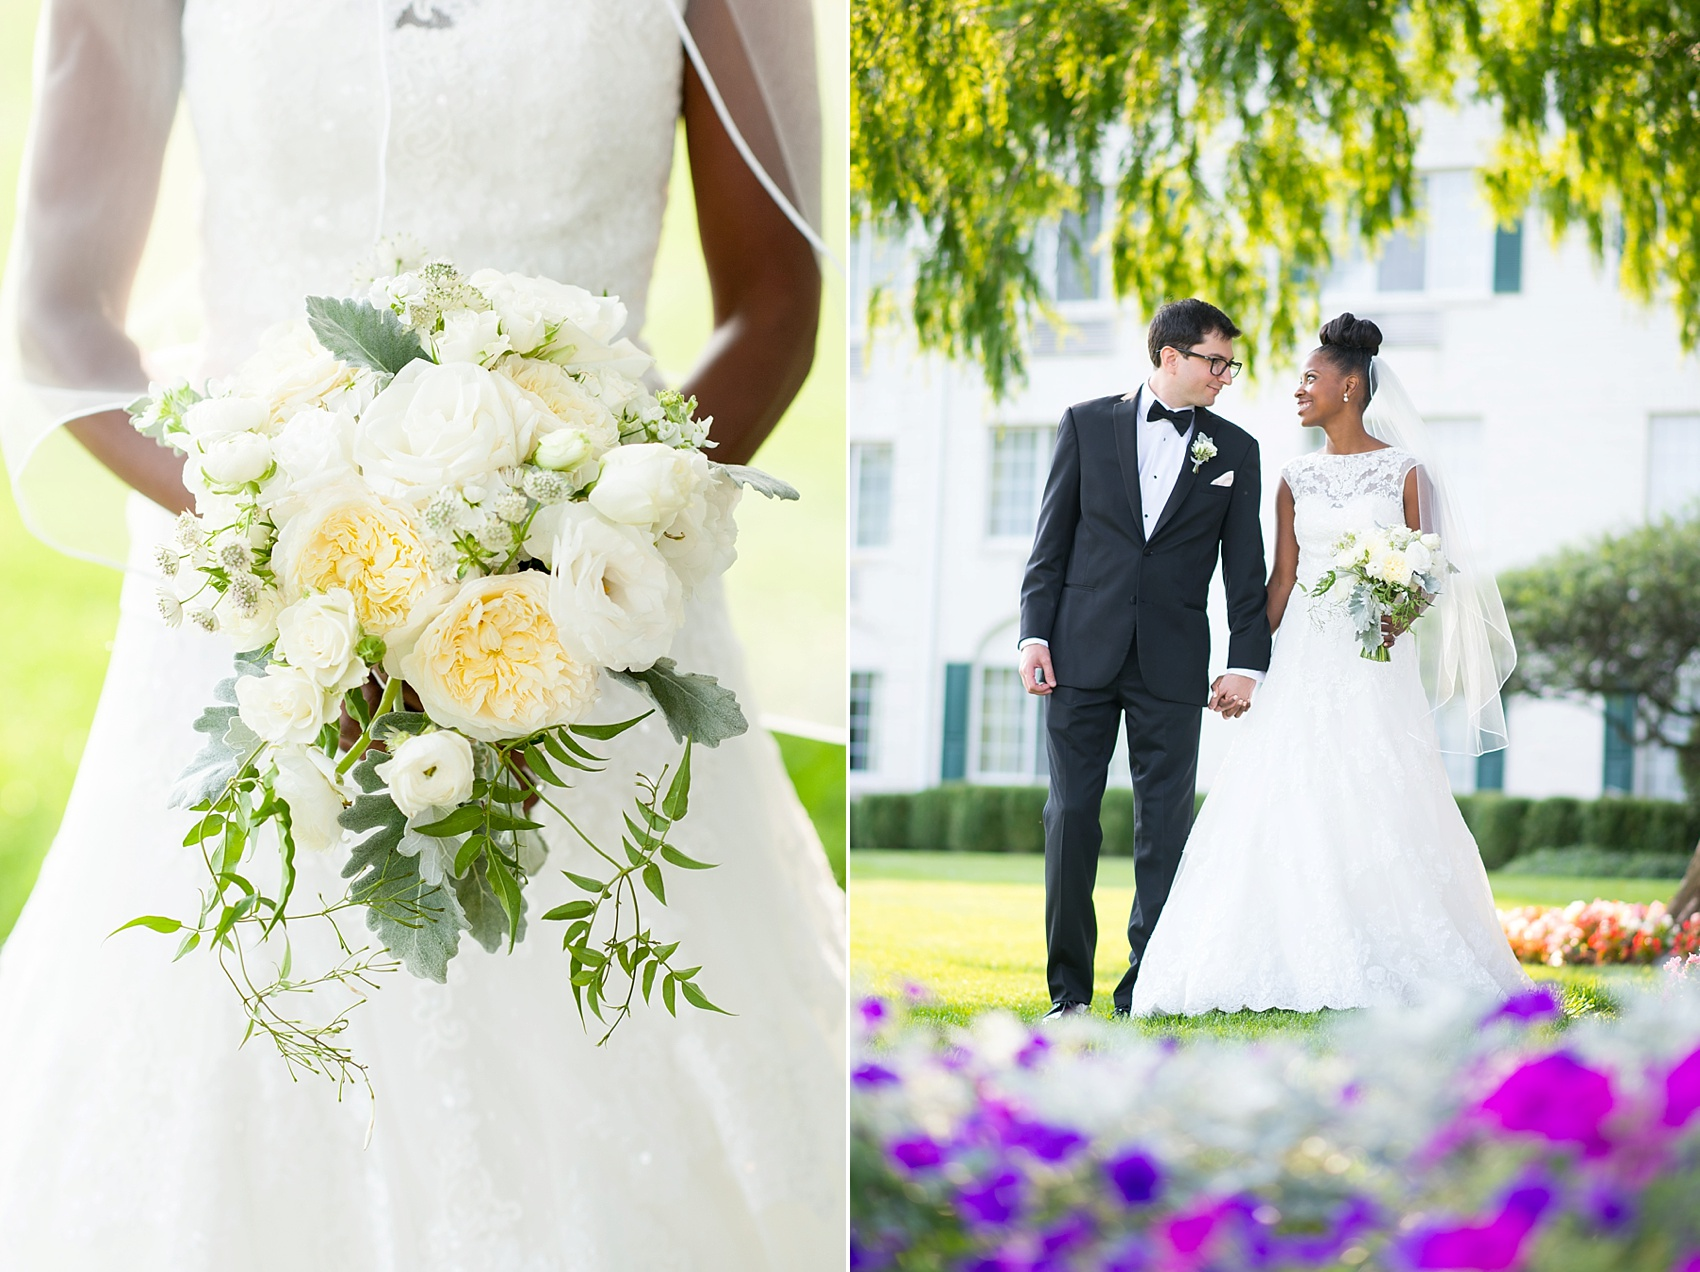 White wedding bouquet at The Conservatory at the Madison Hotel, New Jersey. Photos by Mikkel Paige Photography.